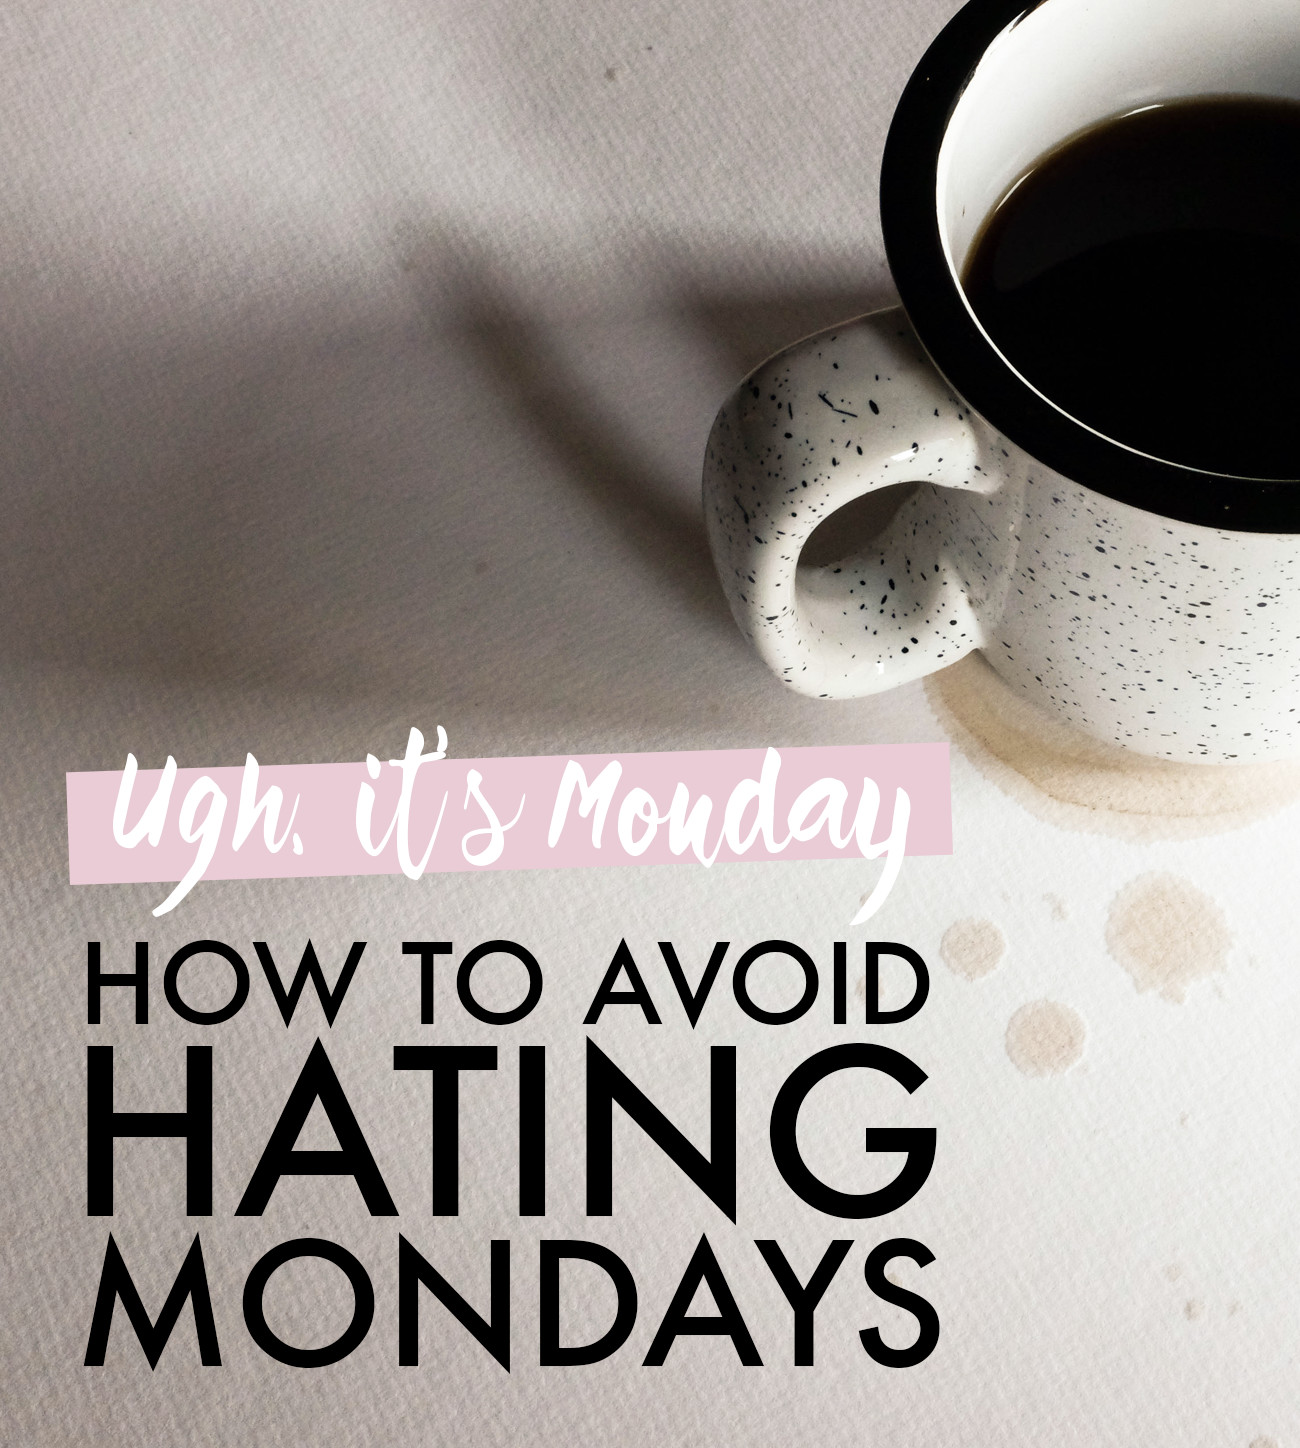 How to Avoid Hating Mondays #tips